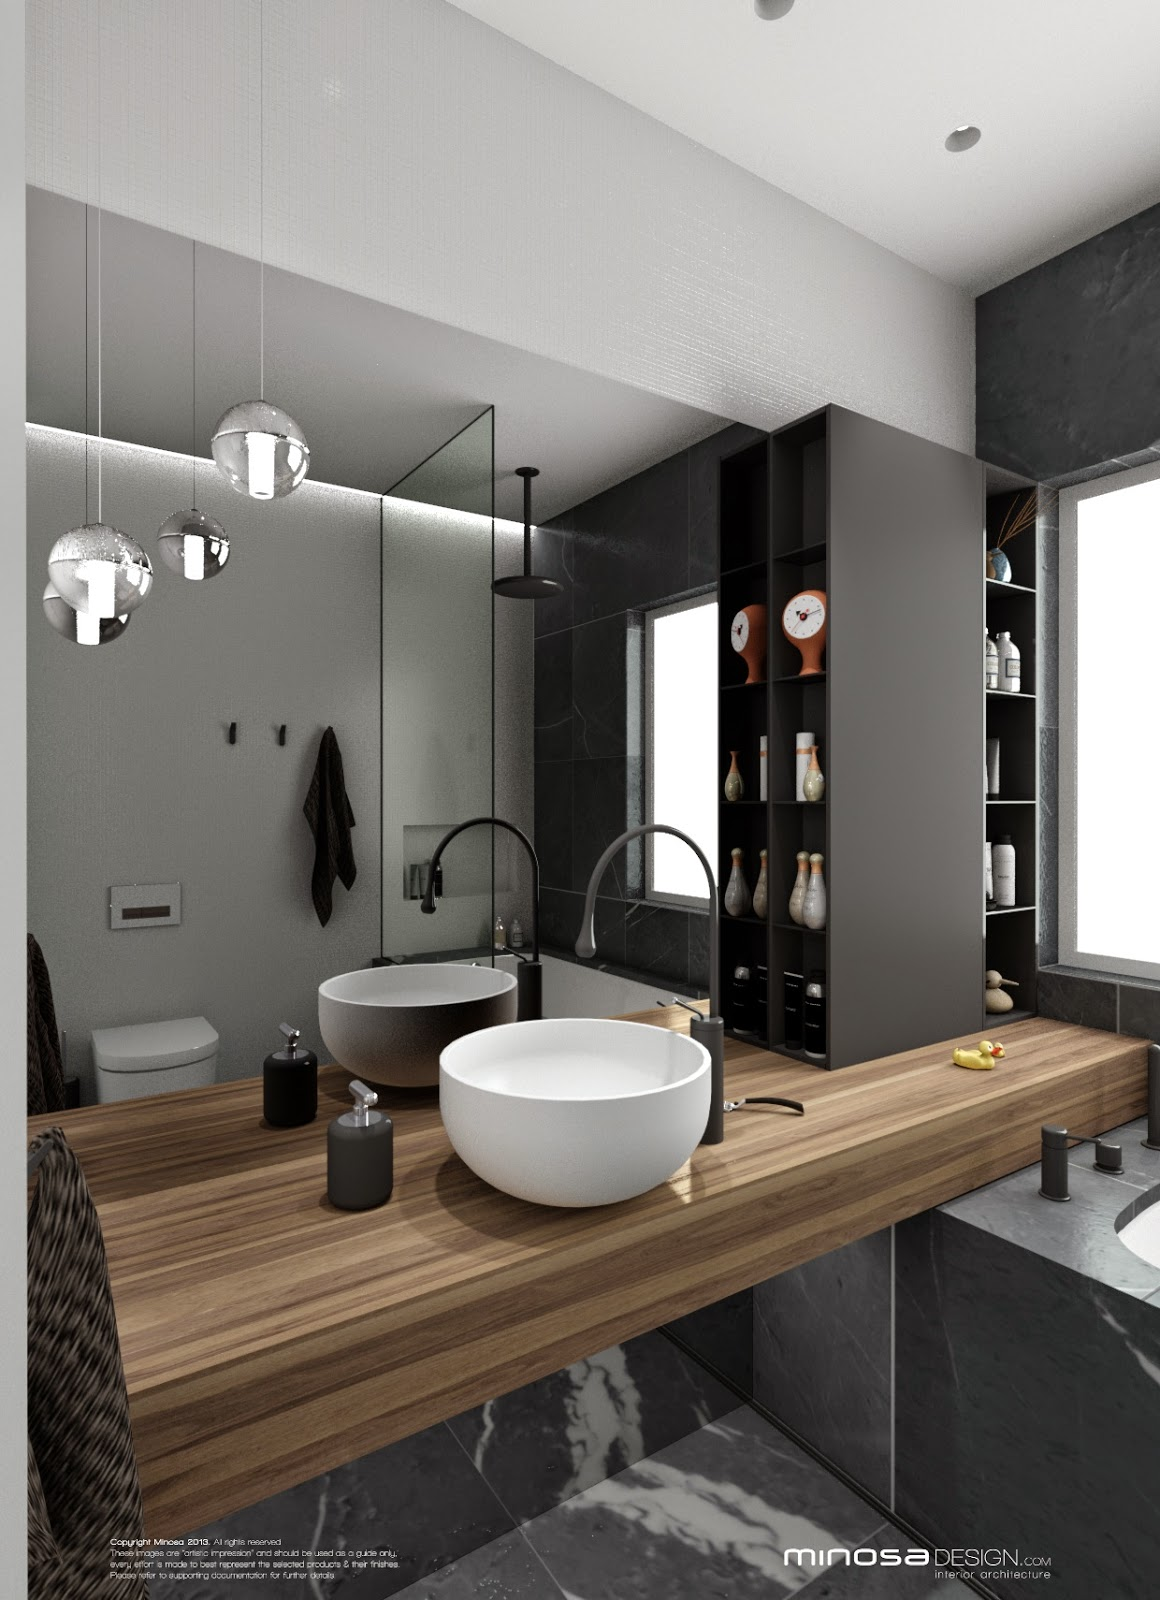 Minosa bathroom design small space feels large for A small bathroom design